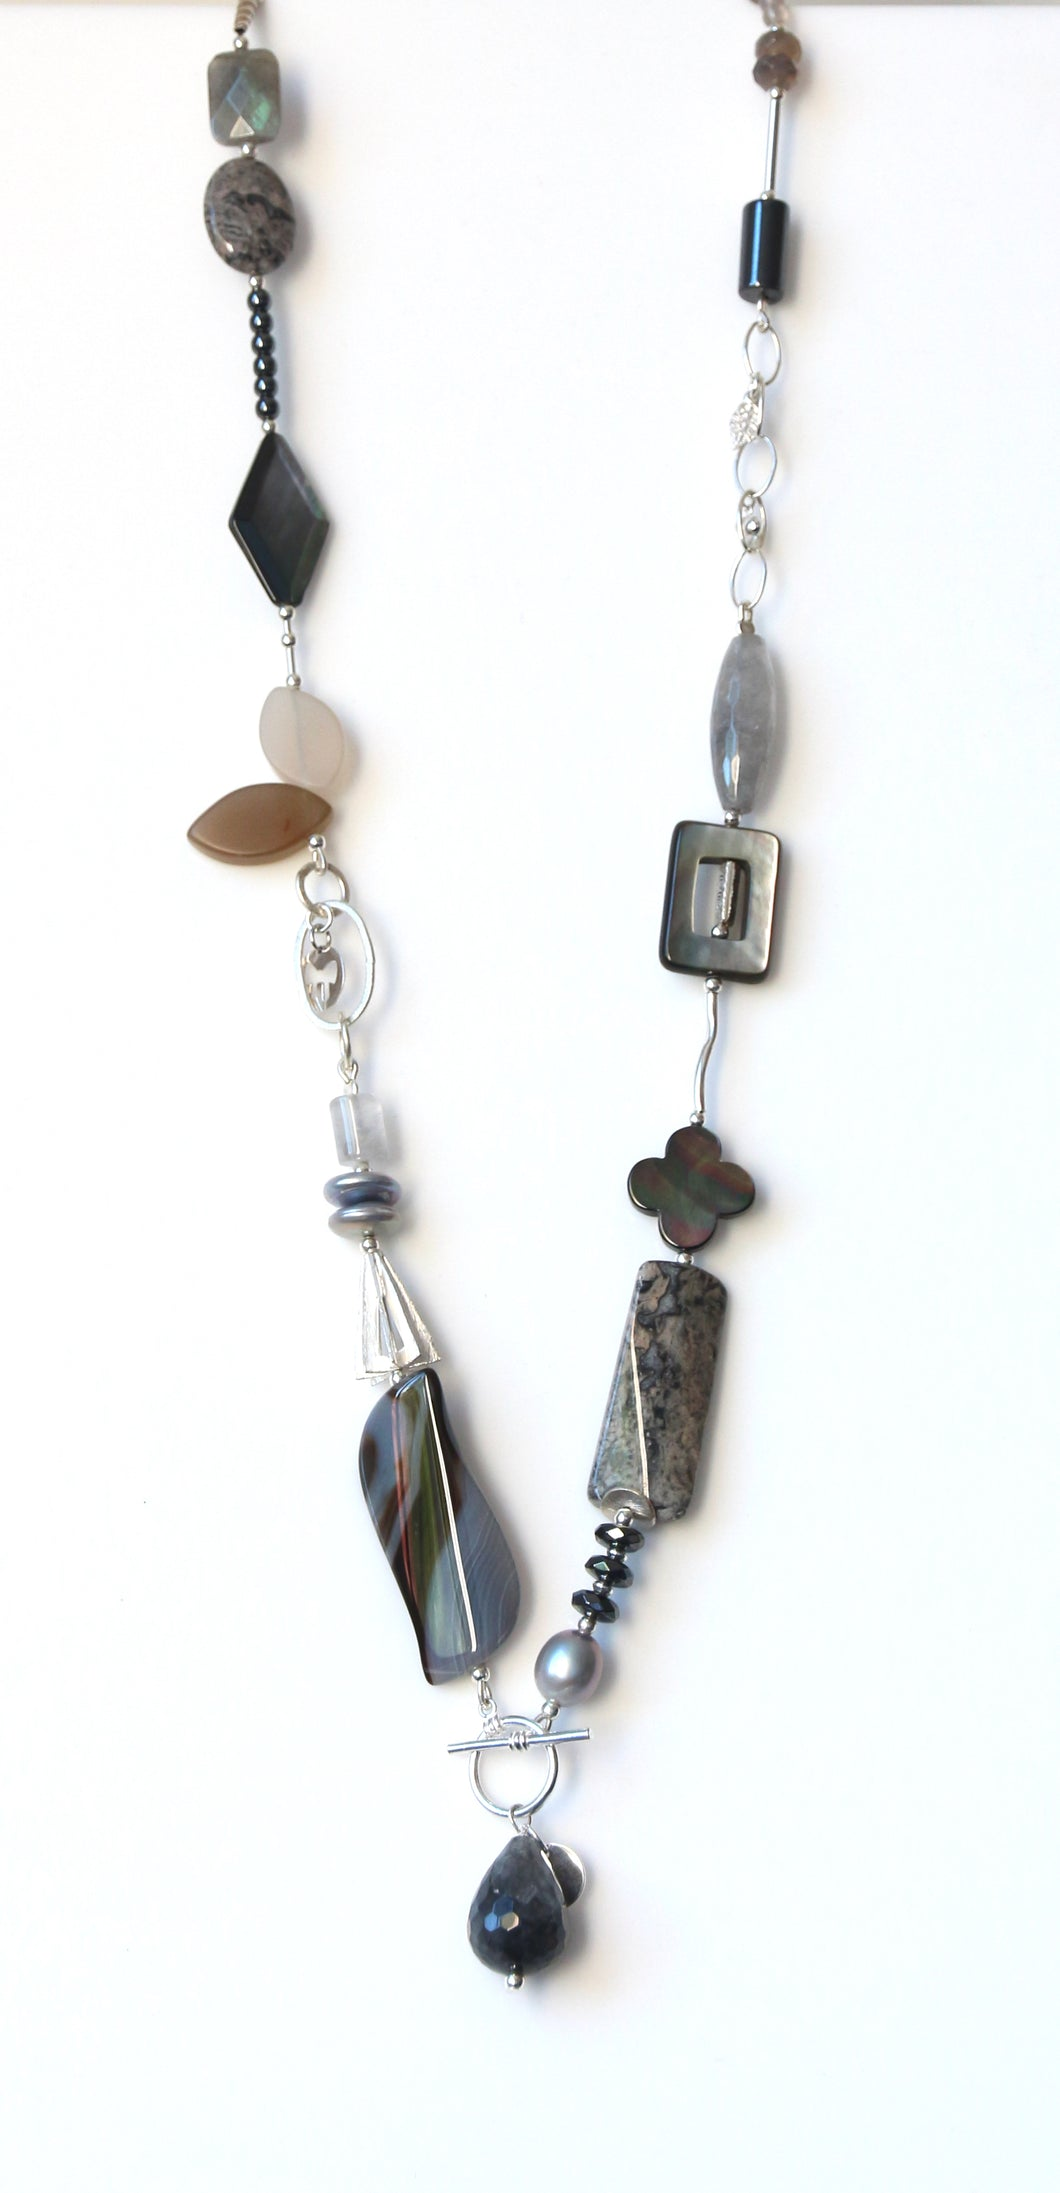 Australian Handmade Grey Fob Necklace with Agate Rutile Quartz Hematite Pearls and Sterling Silver